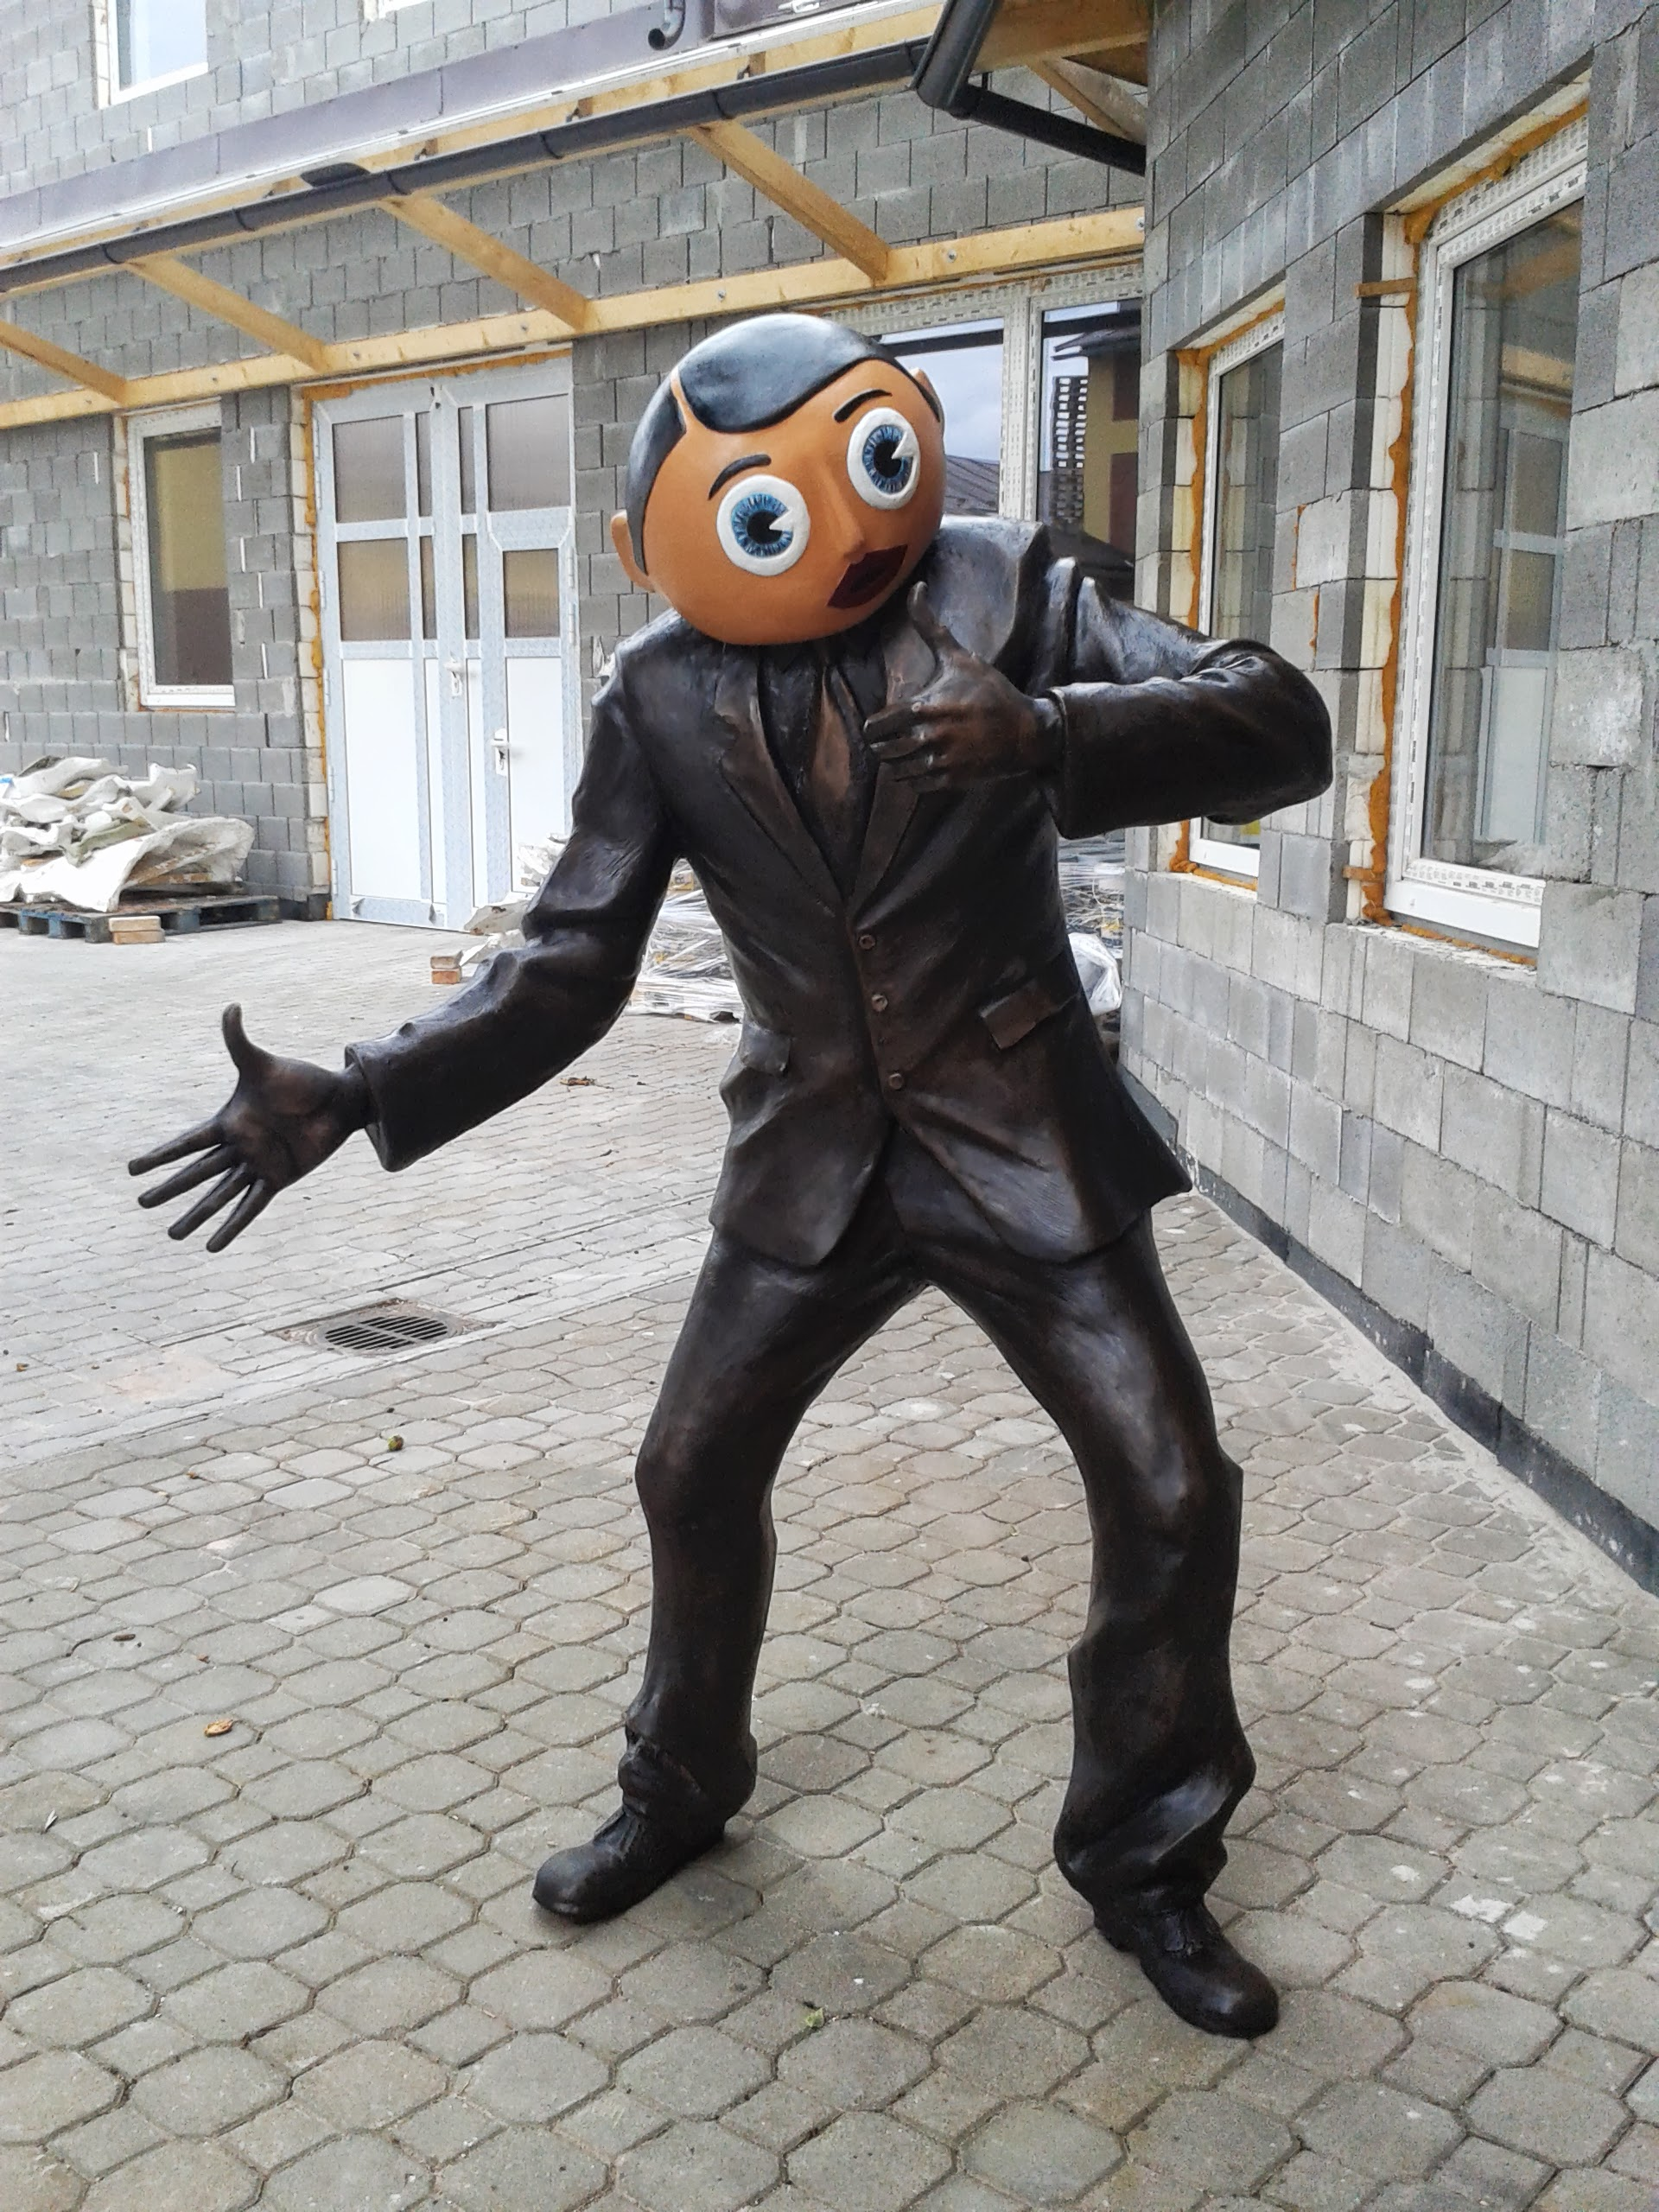 the finished and cast bronze statue of frank sidebottom